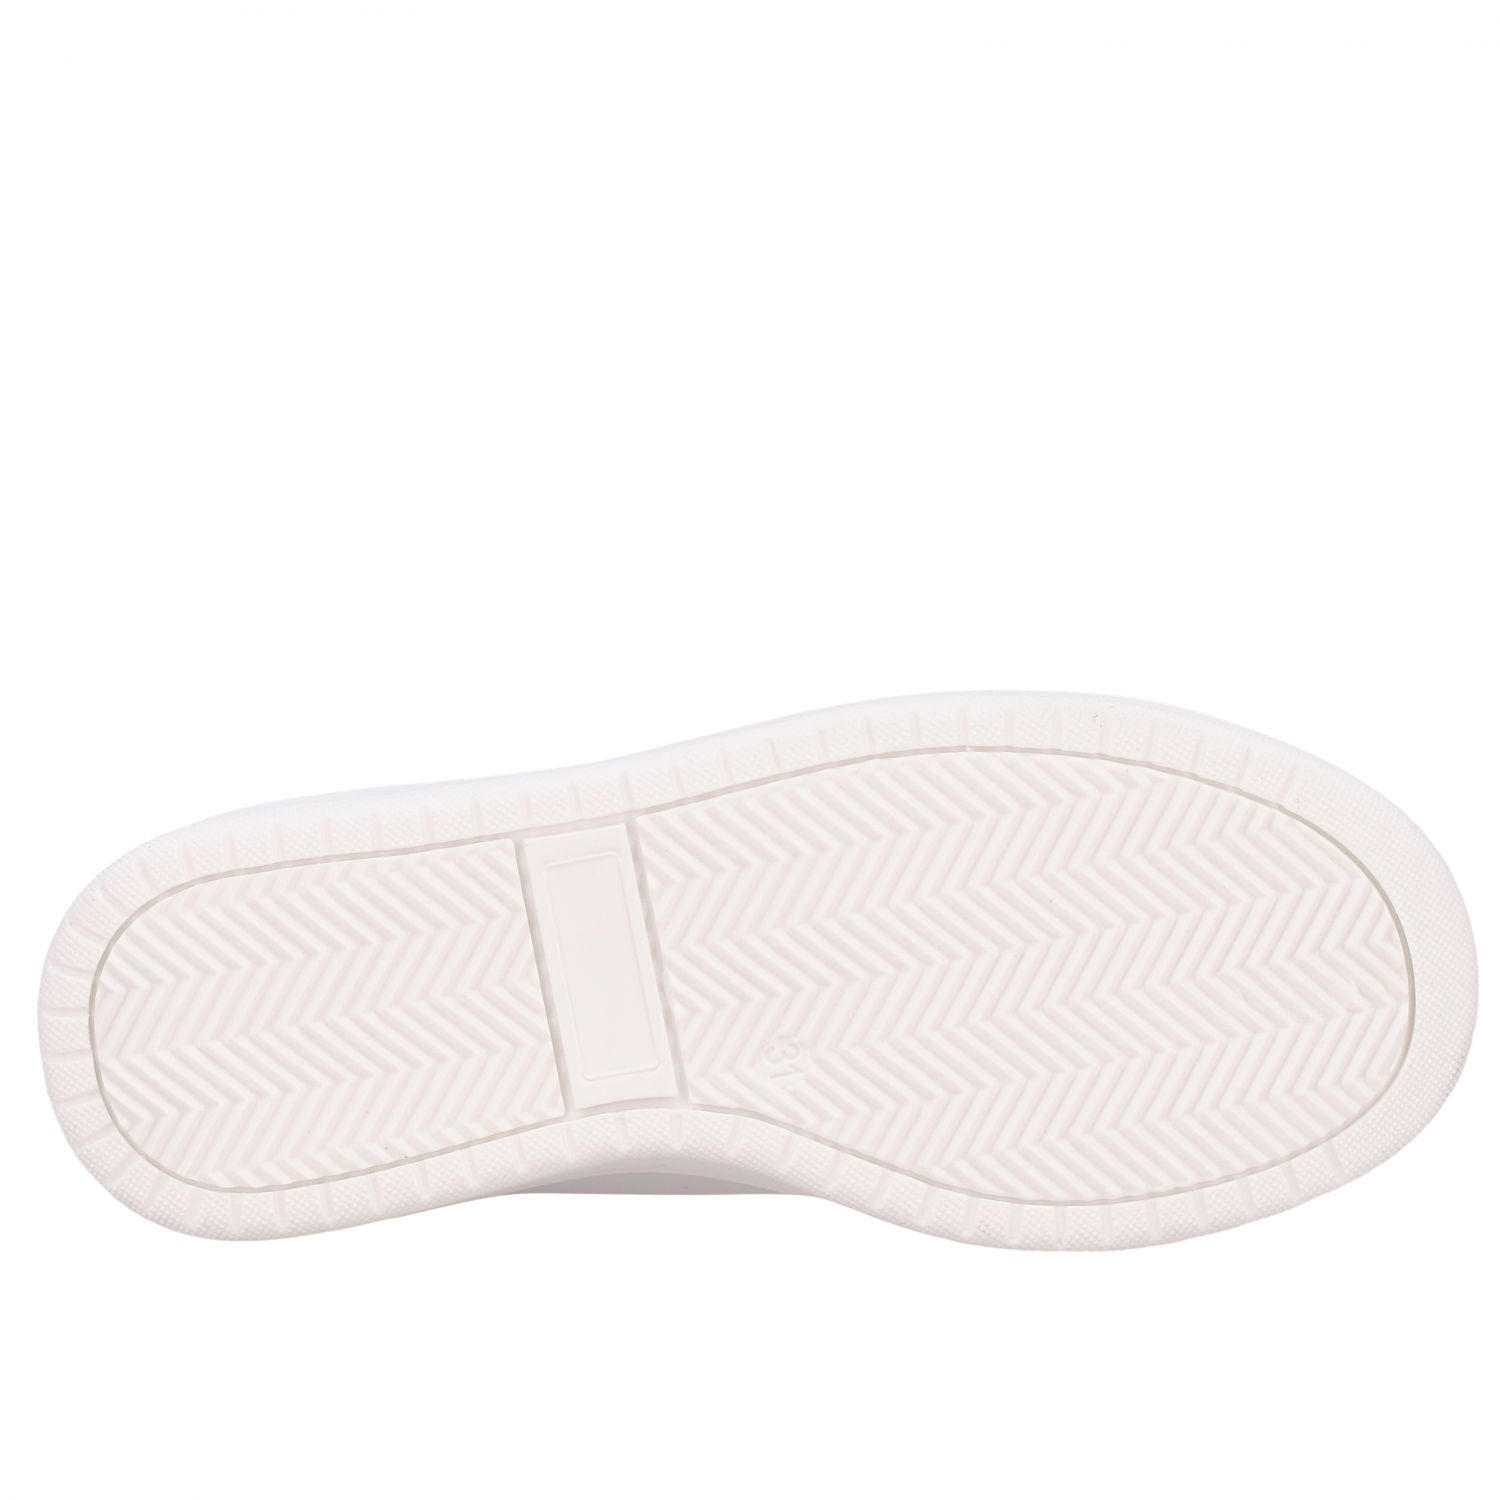 Shoes kids Philippe Model white 6